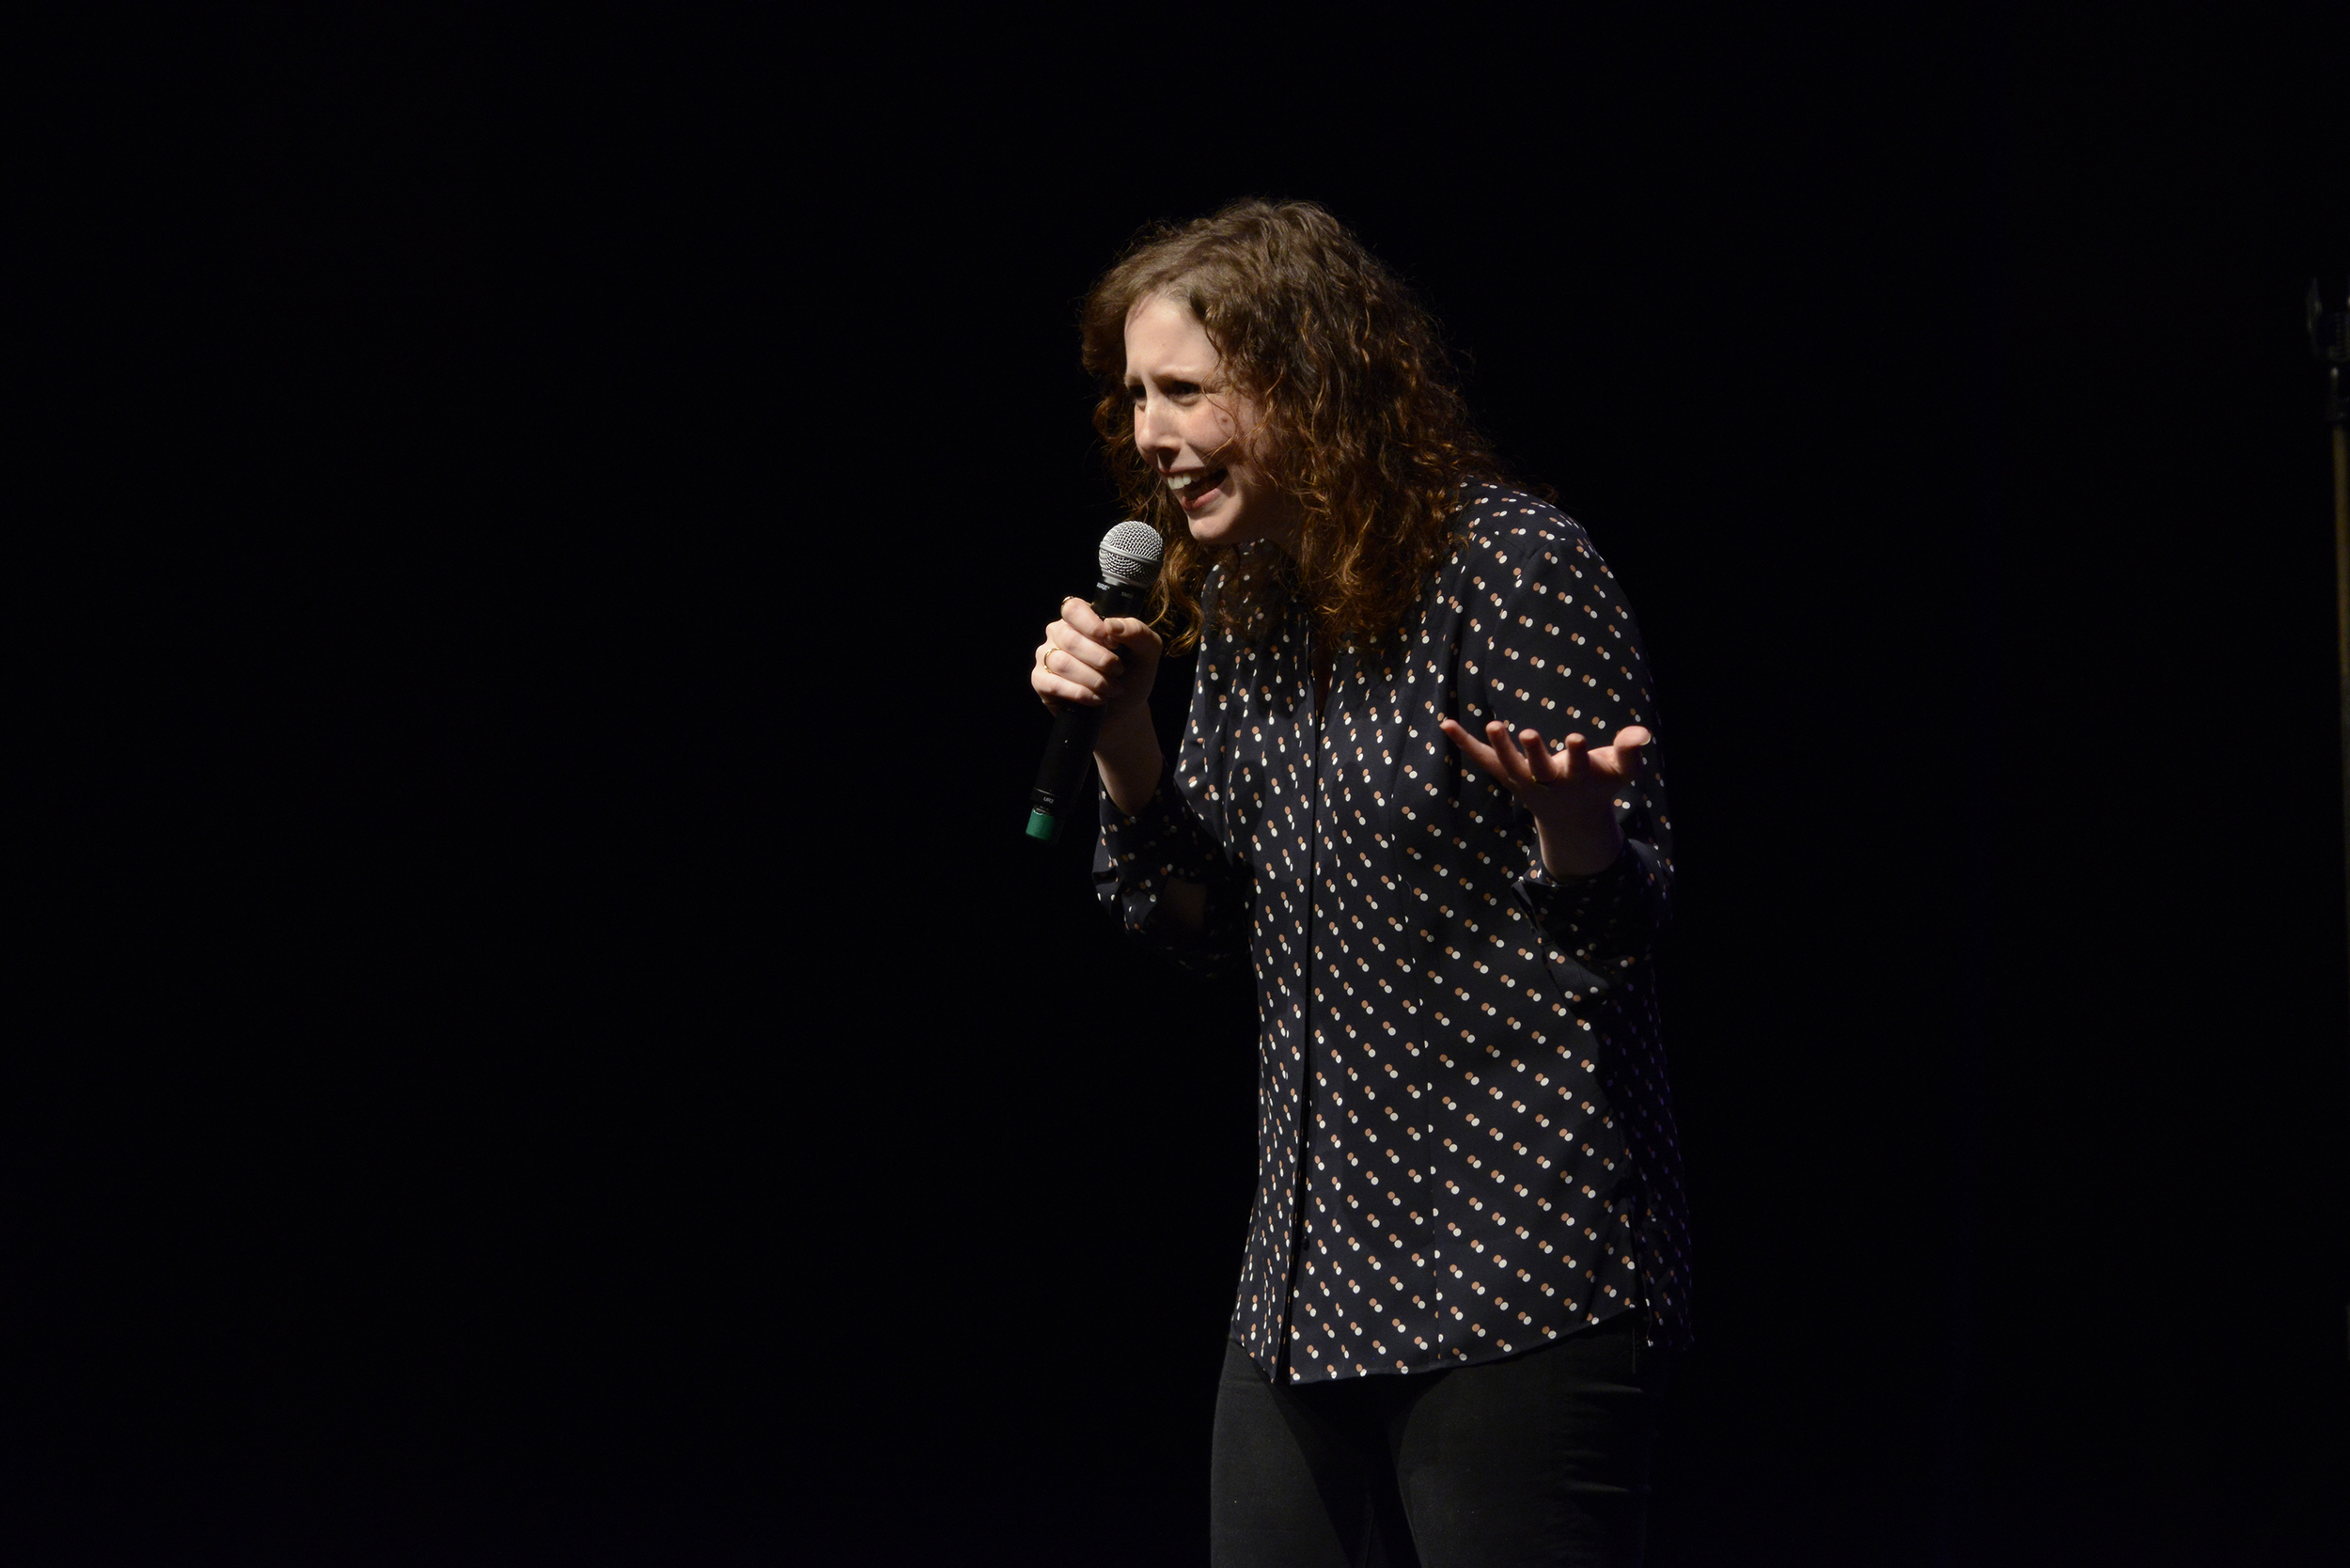 """Comedian Vanessa Bayer,a regular cast member on """"Saturday Night Live,"""" performs during a Spring Weekend comedy show in the Jorgensen Center for the Performing Arts in Storrs, Connecticut on Friday, April 22, 2016. (Jason Jiang/The Daily Campus)"""